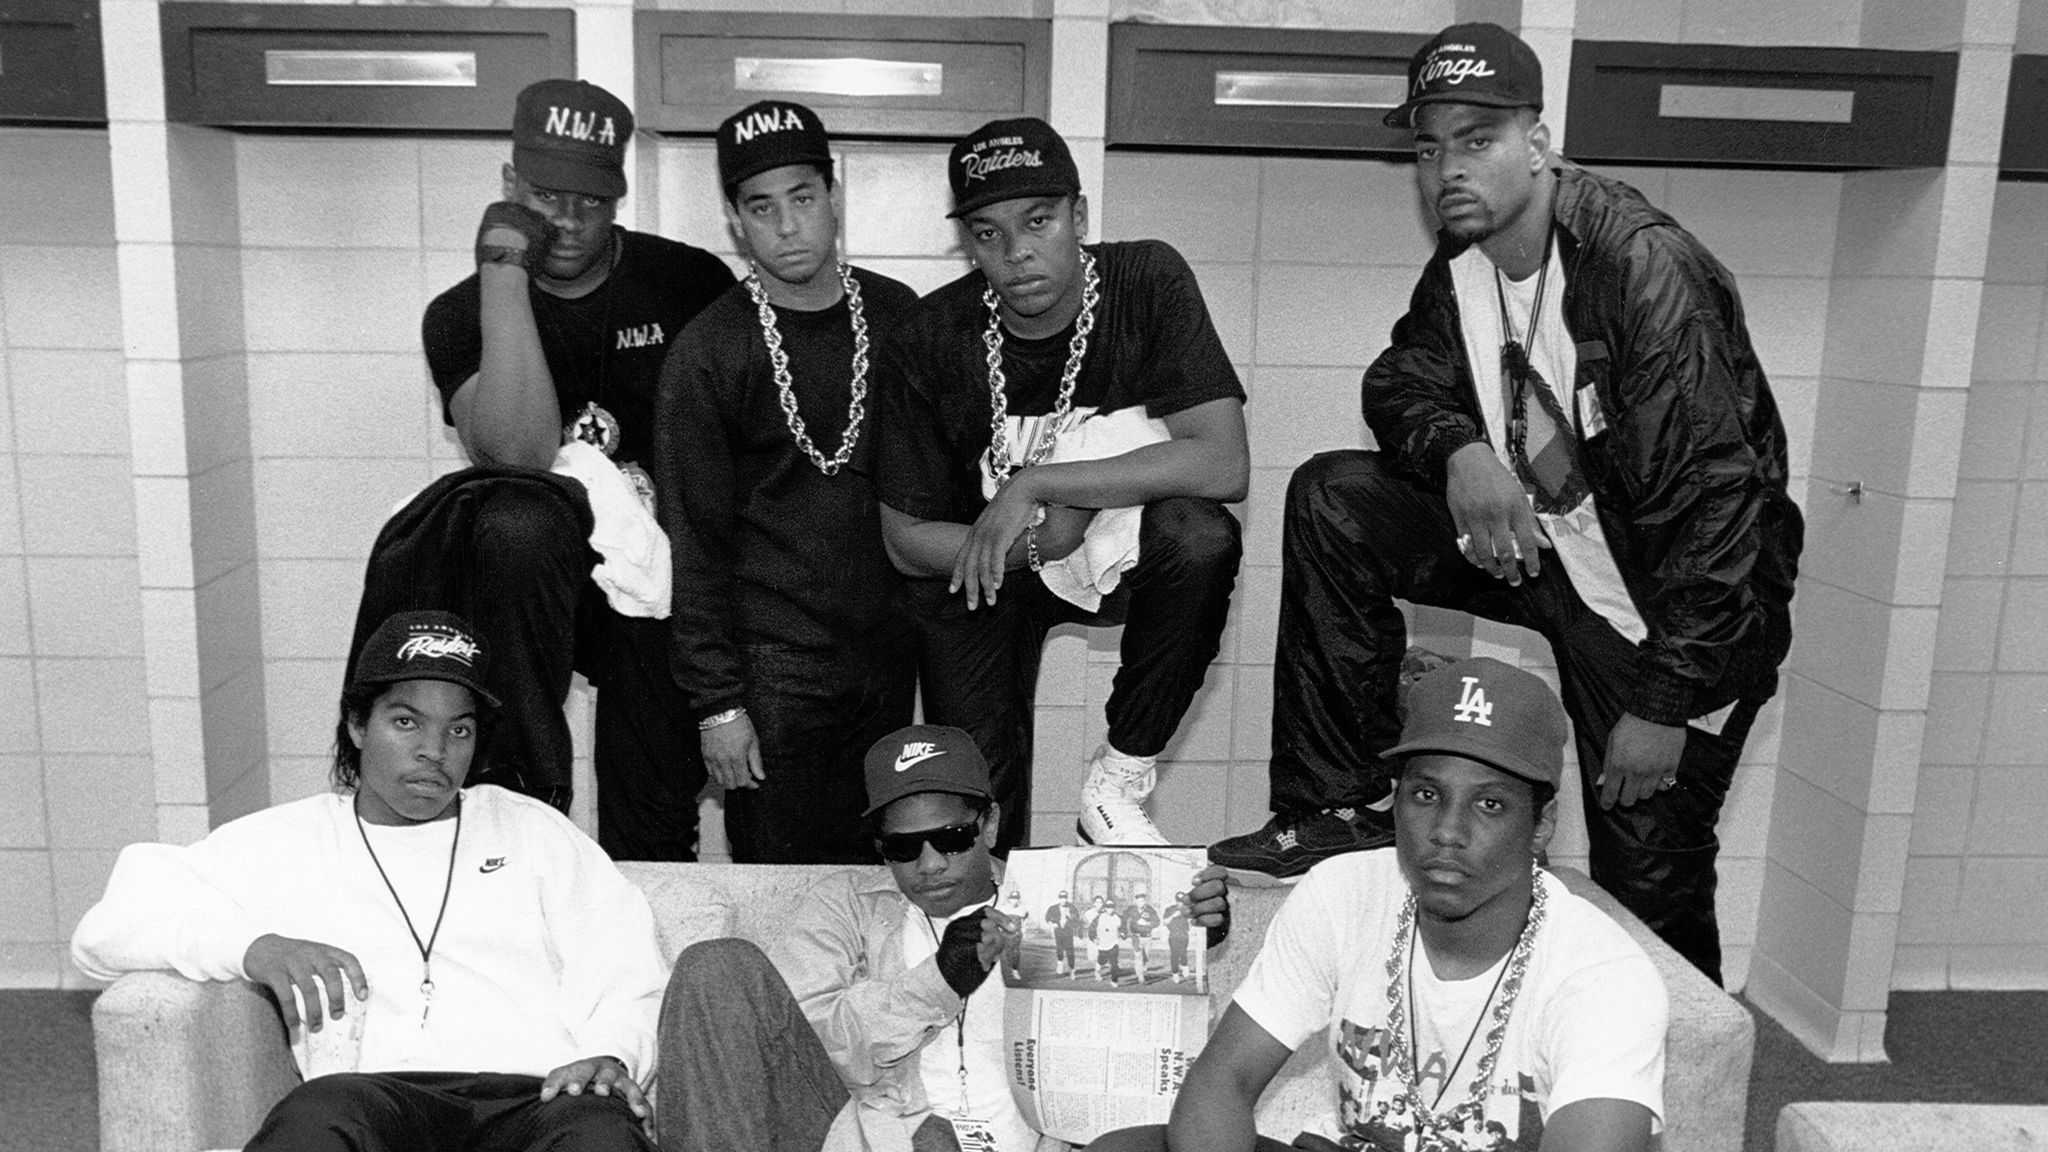 e4674e064 The moment N.W.A changed the music world - Los Angeles Times